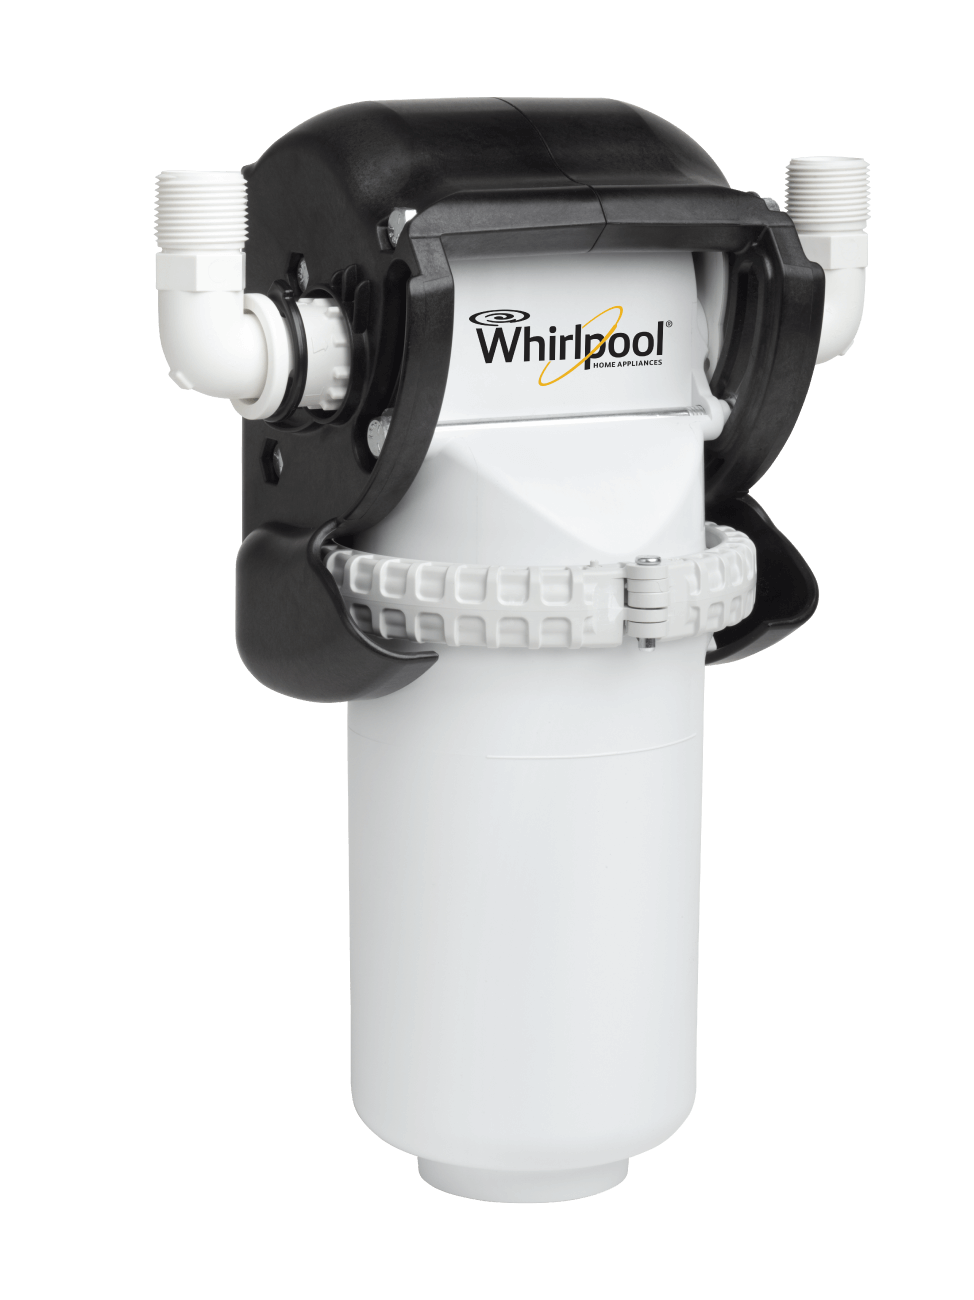 Pivotal Whole Home Filtration System Wha Wh90 Whirlpool